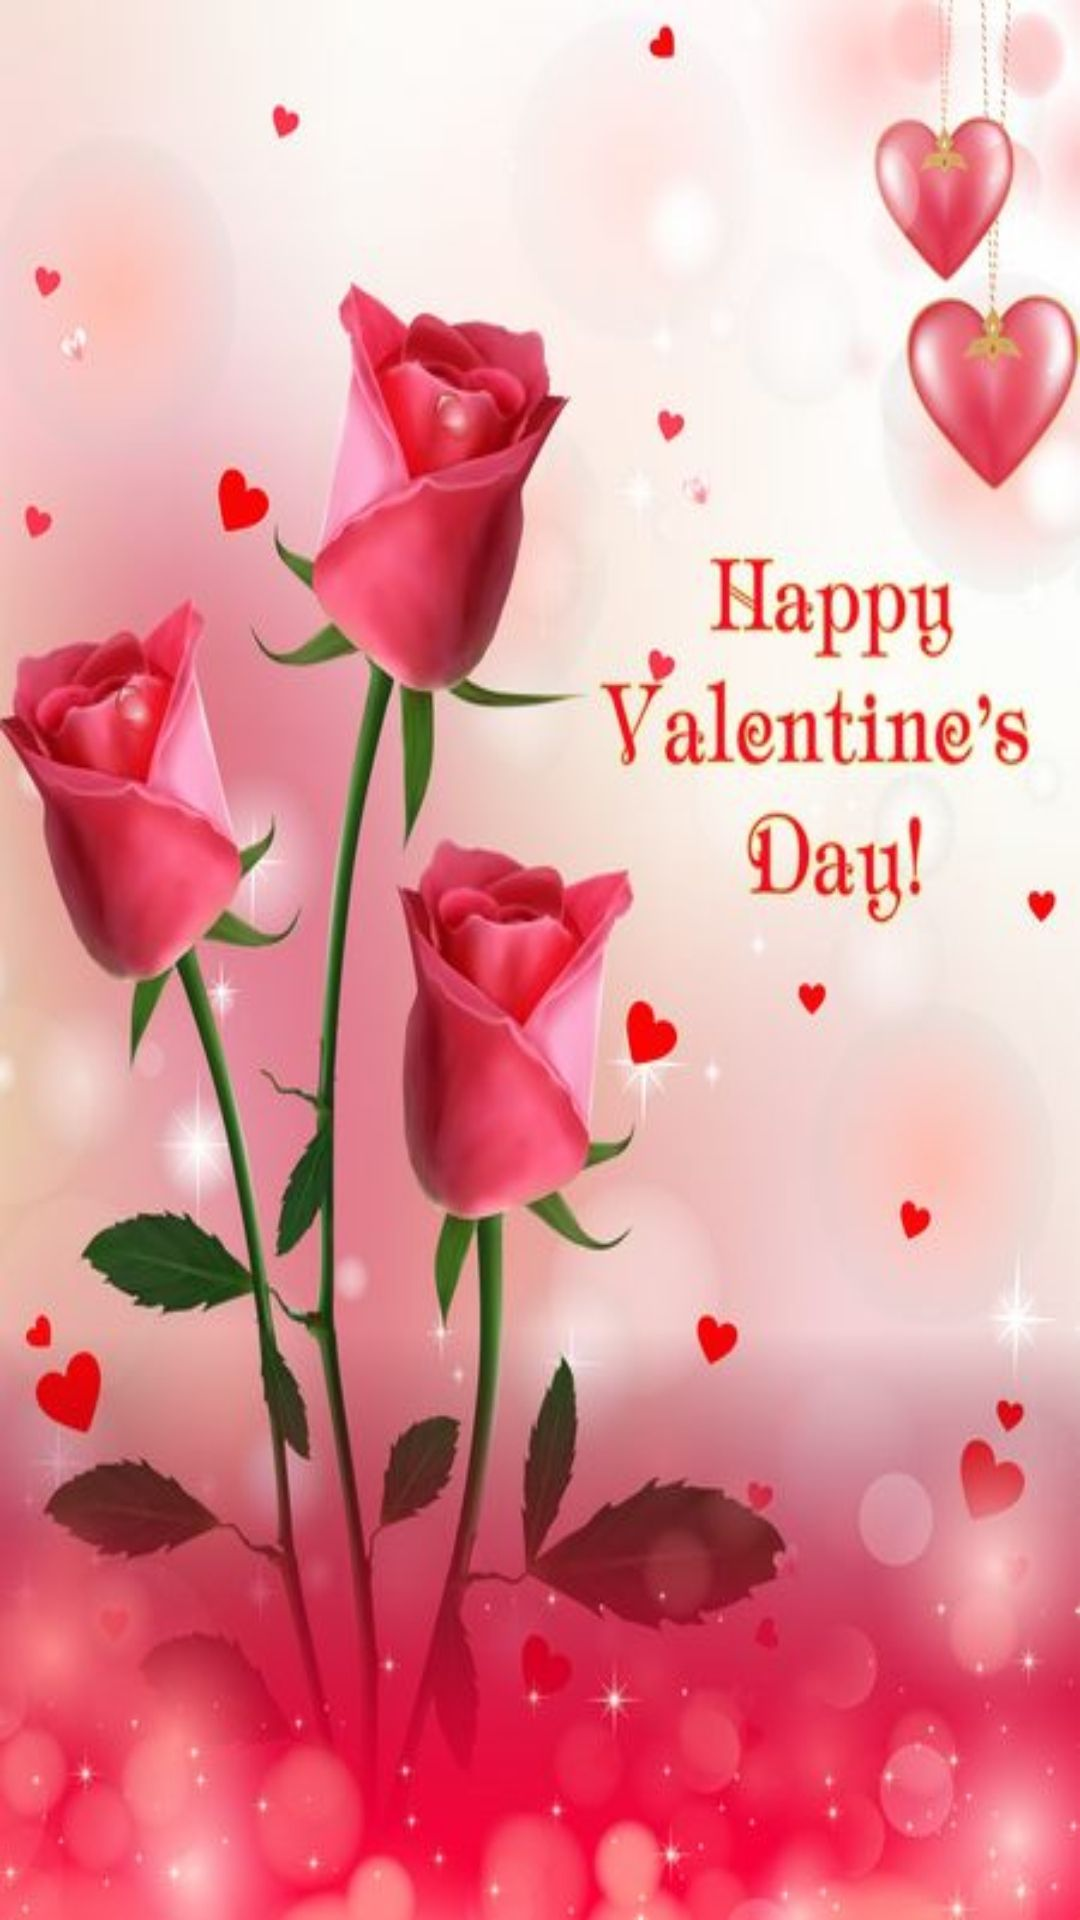 Valentine S Day Wallpaper For Android In 2021 Valentines Wallpaper Holiday Wallpaper Happy Valentines Day Android wallpaper valentines day 2021